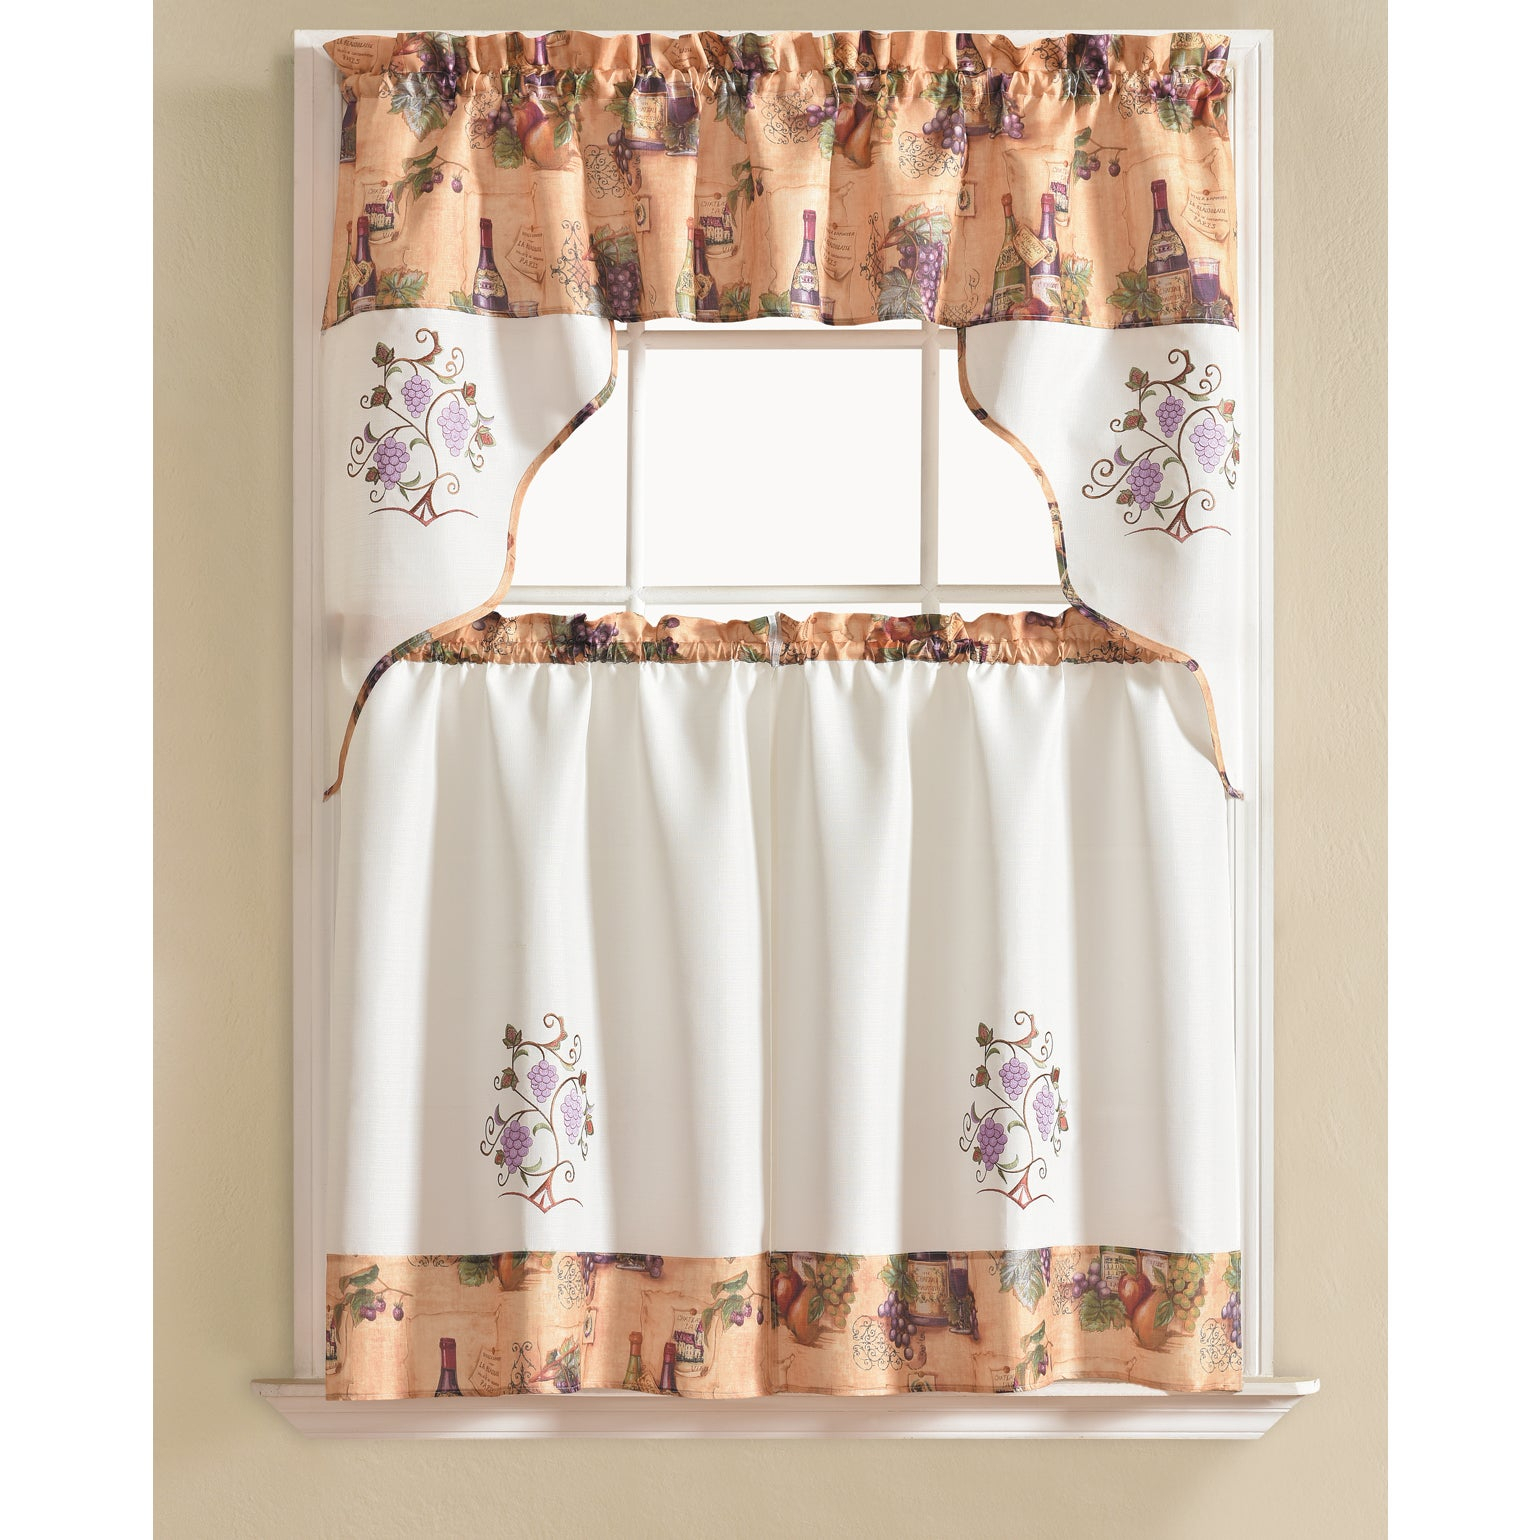 Rt Designers Collection Urban Embroidered Tier And Valance Kitchen Curtain  Tier Set Pertaining To Embroidered Chef Black 5 Piece Kitchen Curtain Sets (Gallery 4 of 20)